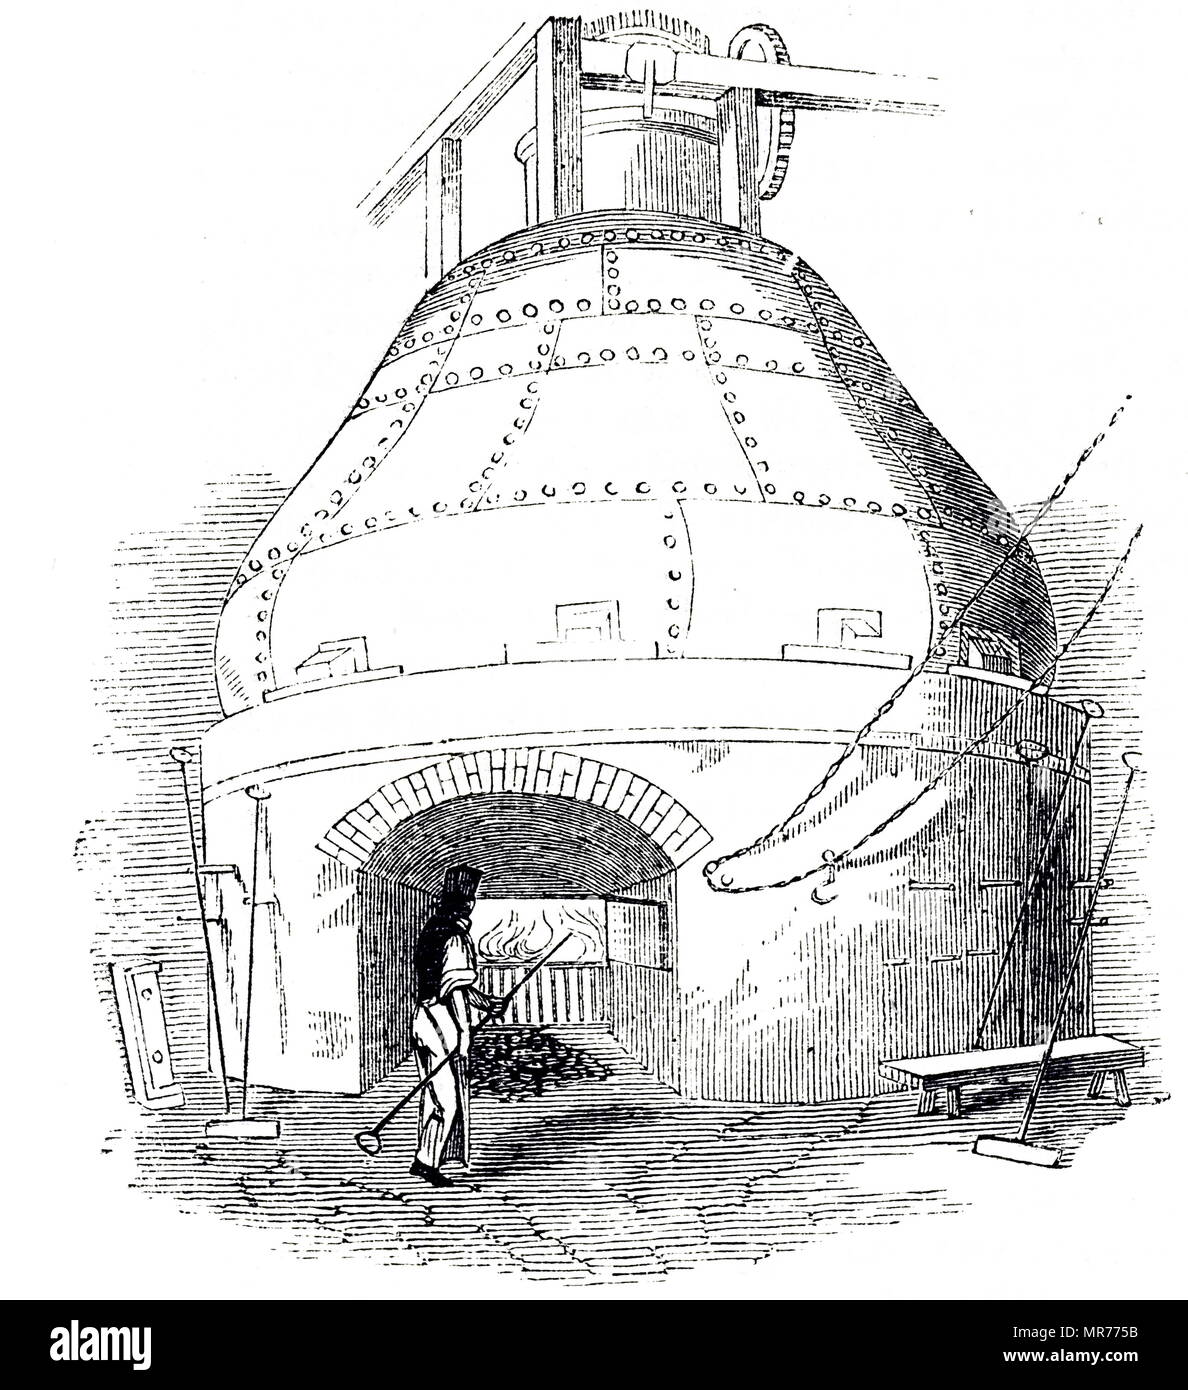 Engraving depicting a wash still containing about 20,000 gallons of mash, heated by a fire underneath. Dated 19th century - Stock Image